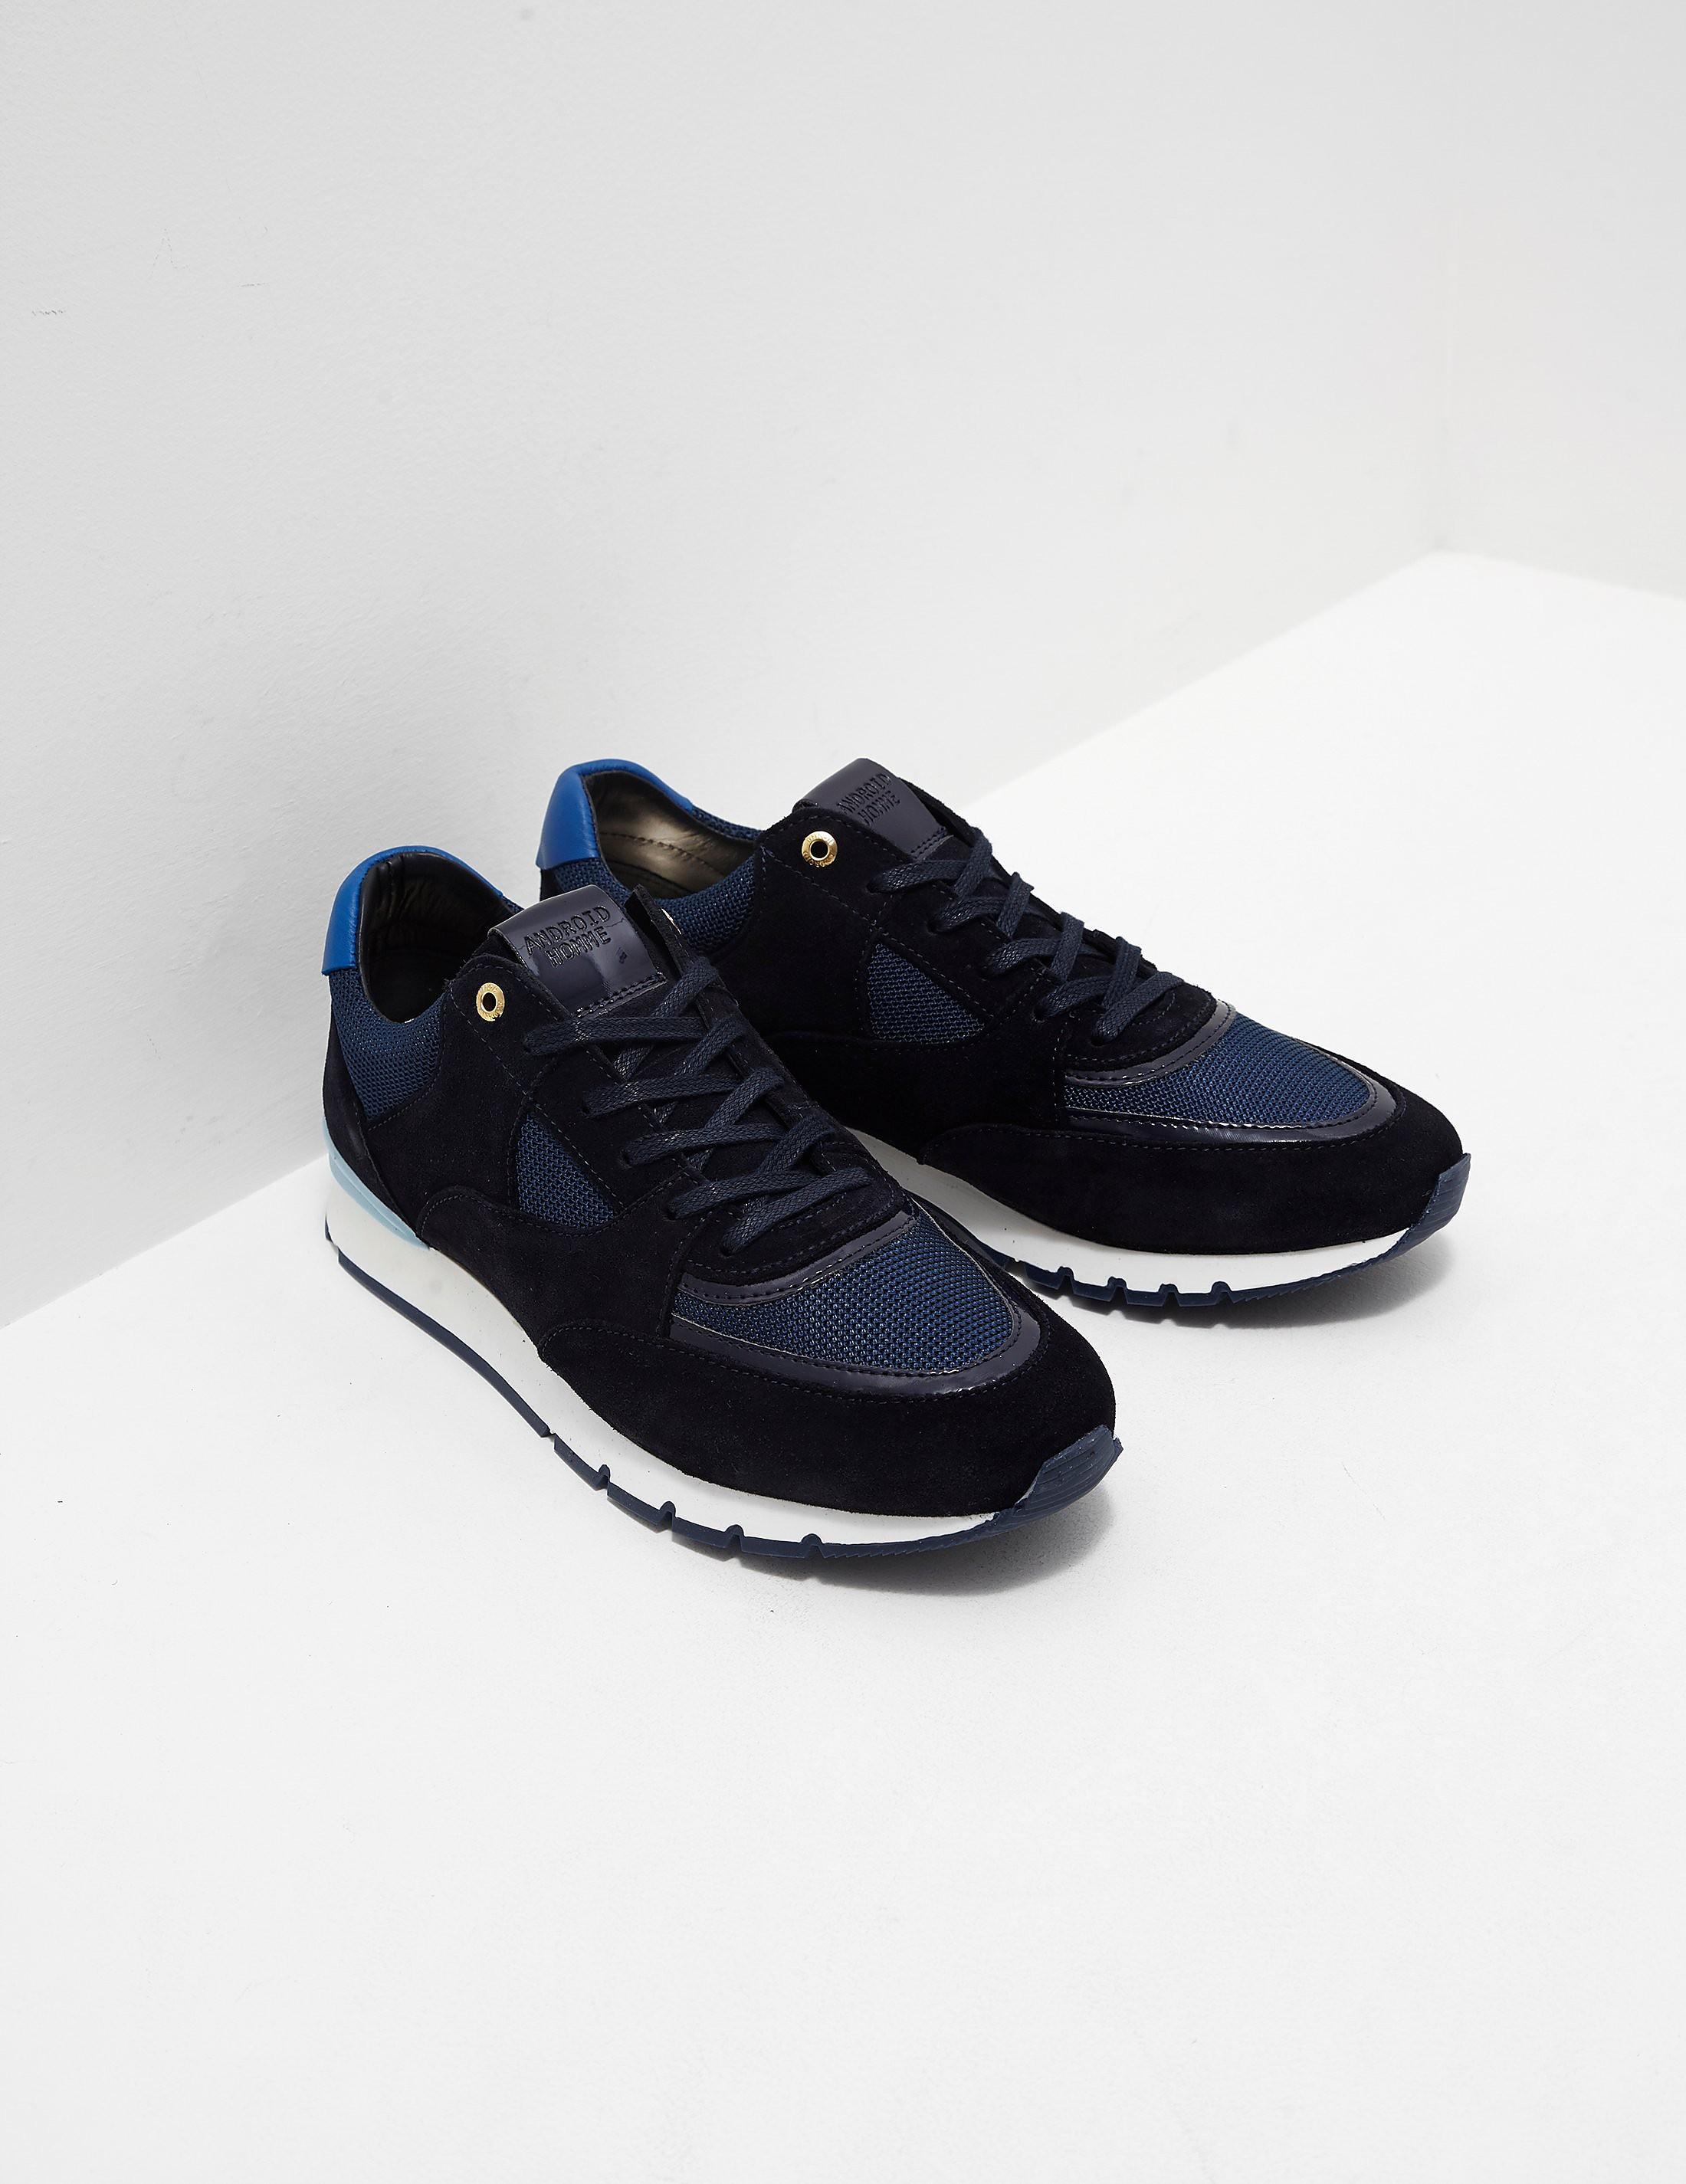 8f18a0cccac Mens Android Homme Belter Runner Navy blue